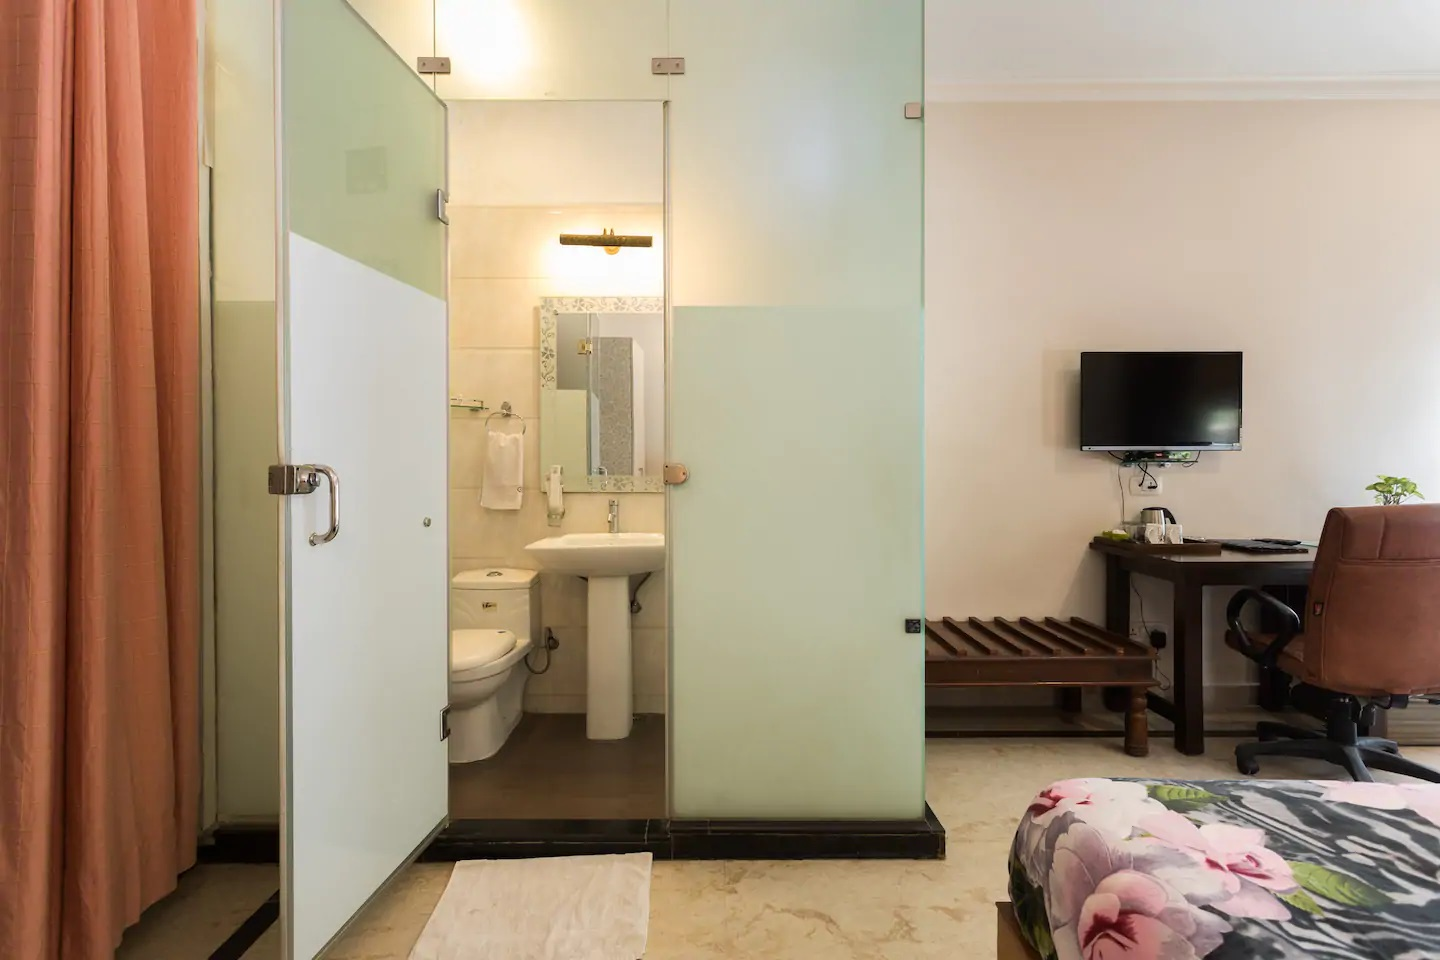 Perch Arbor Suites, Winsome Room, washroom